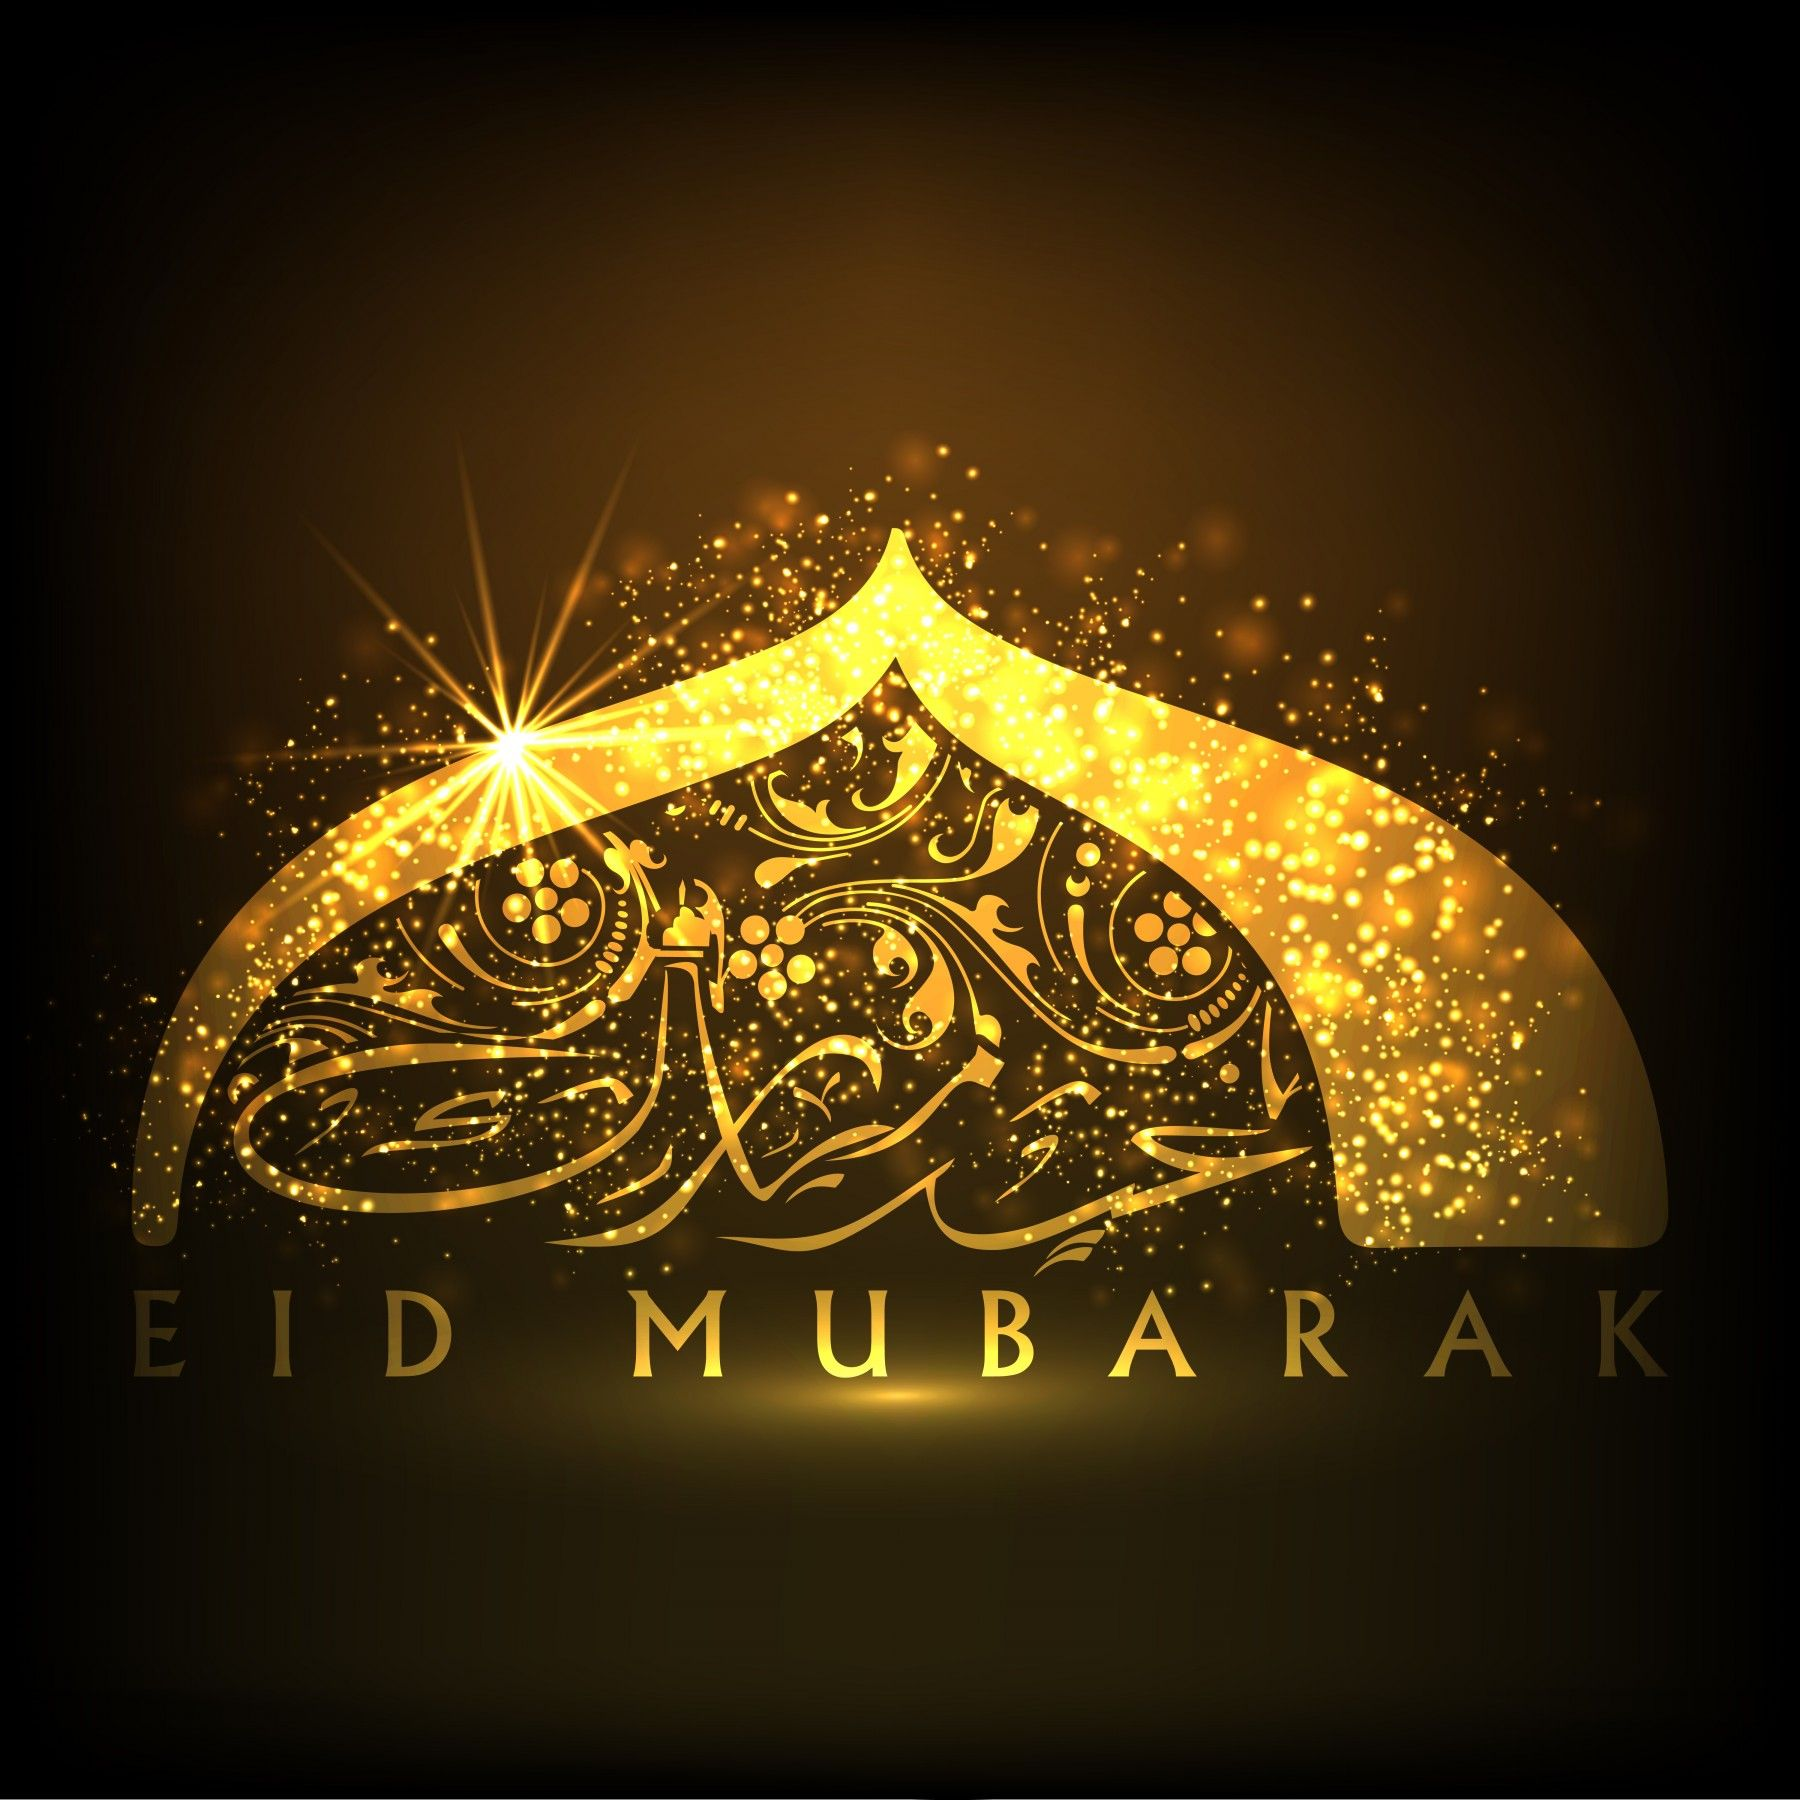 EidulAdha festival of Sacrifice also known as the Greater Eid is the second most important festival in the Muslim calendar The festival remembers the prophet